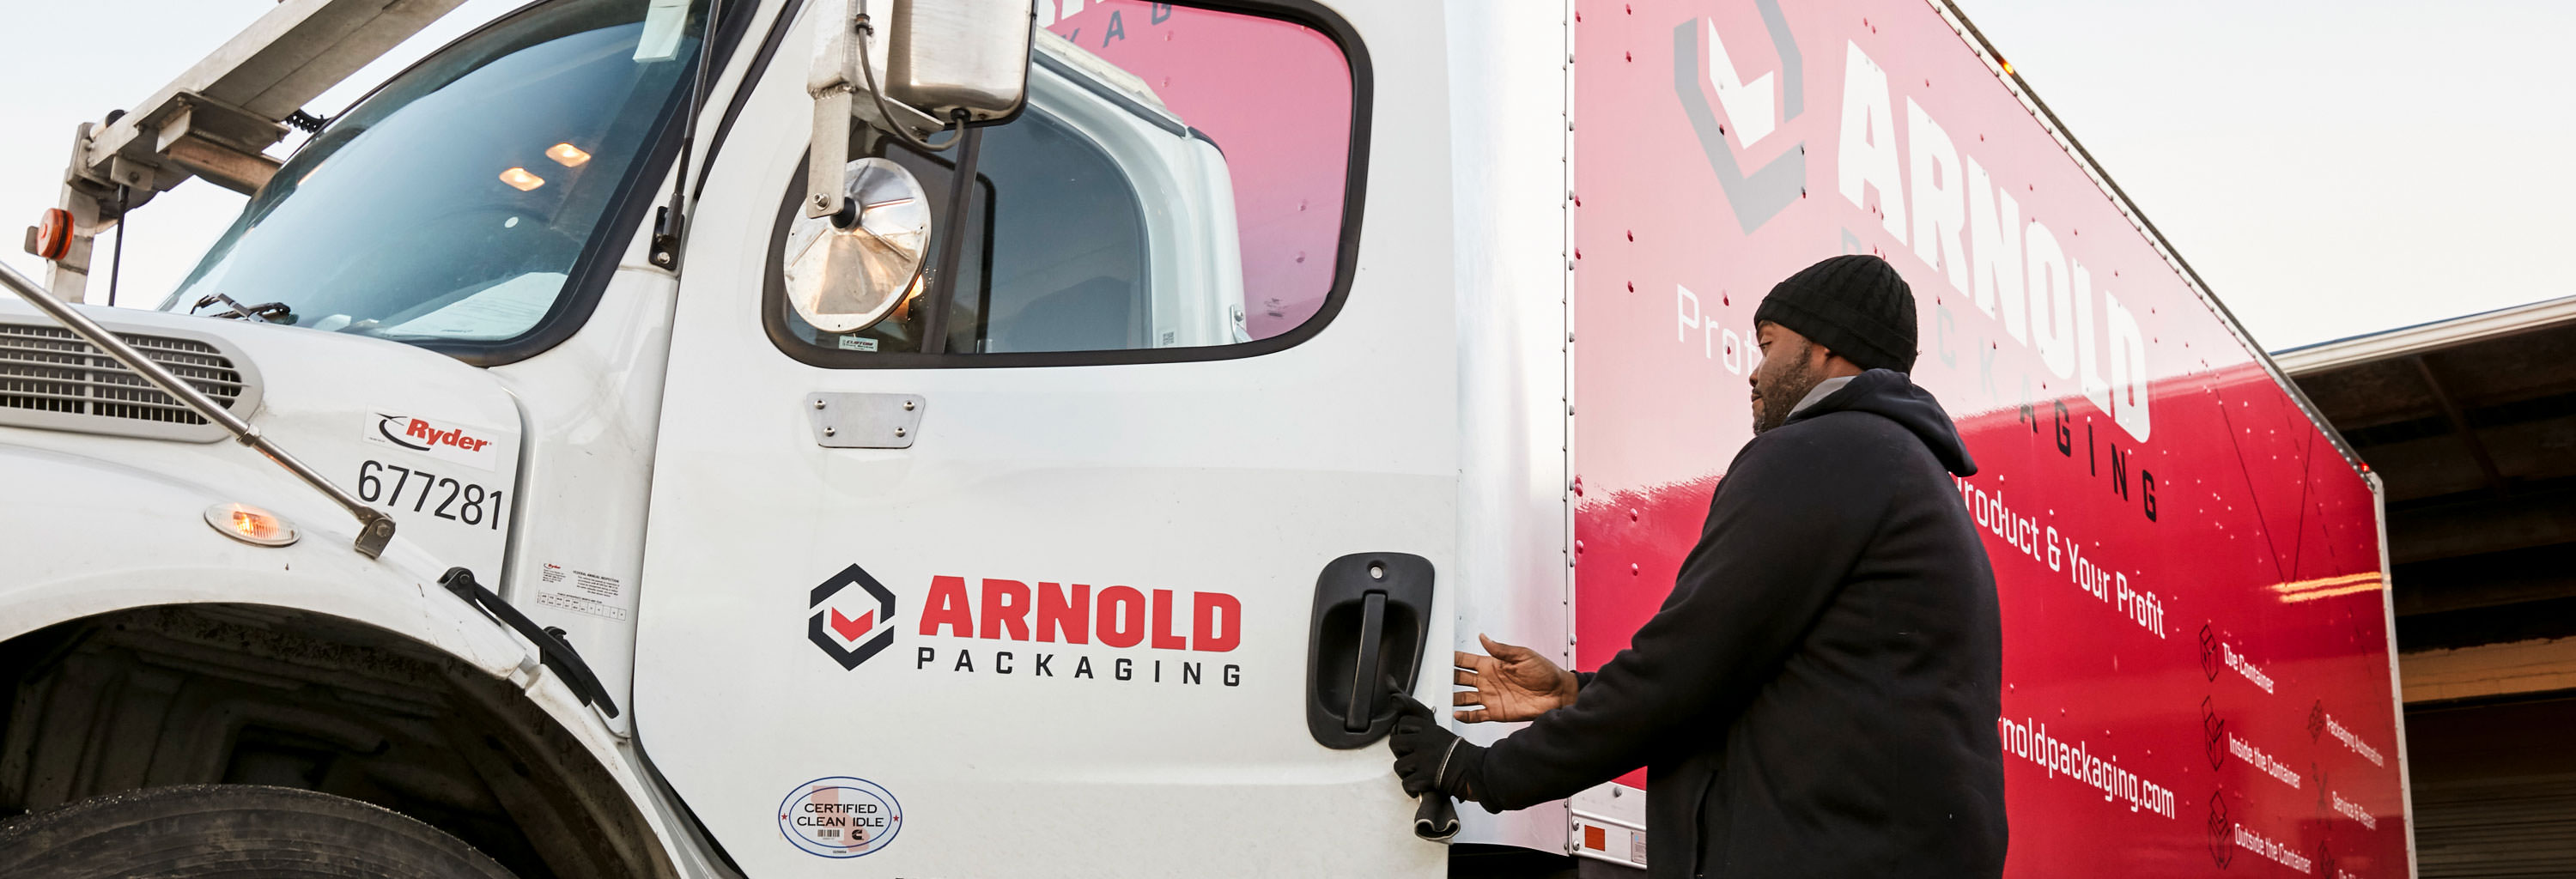 Arnold Packaging - Overview